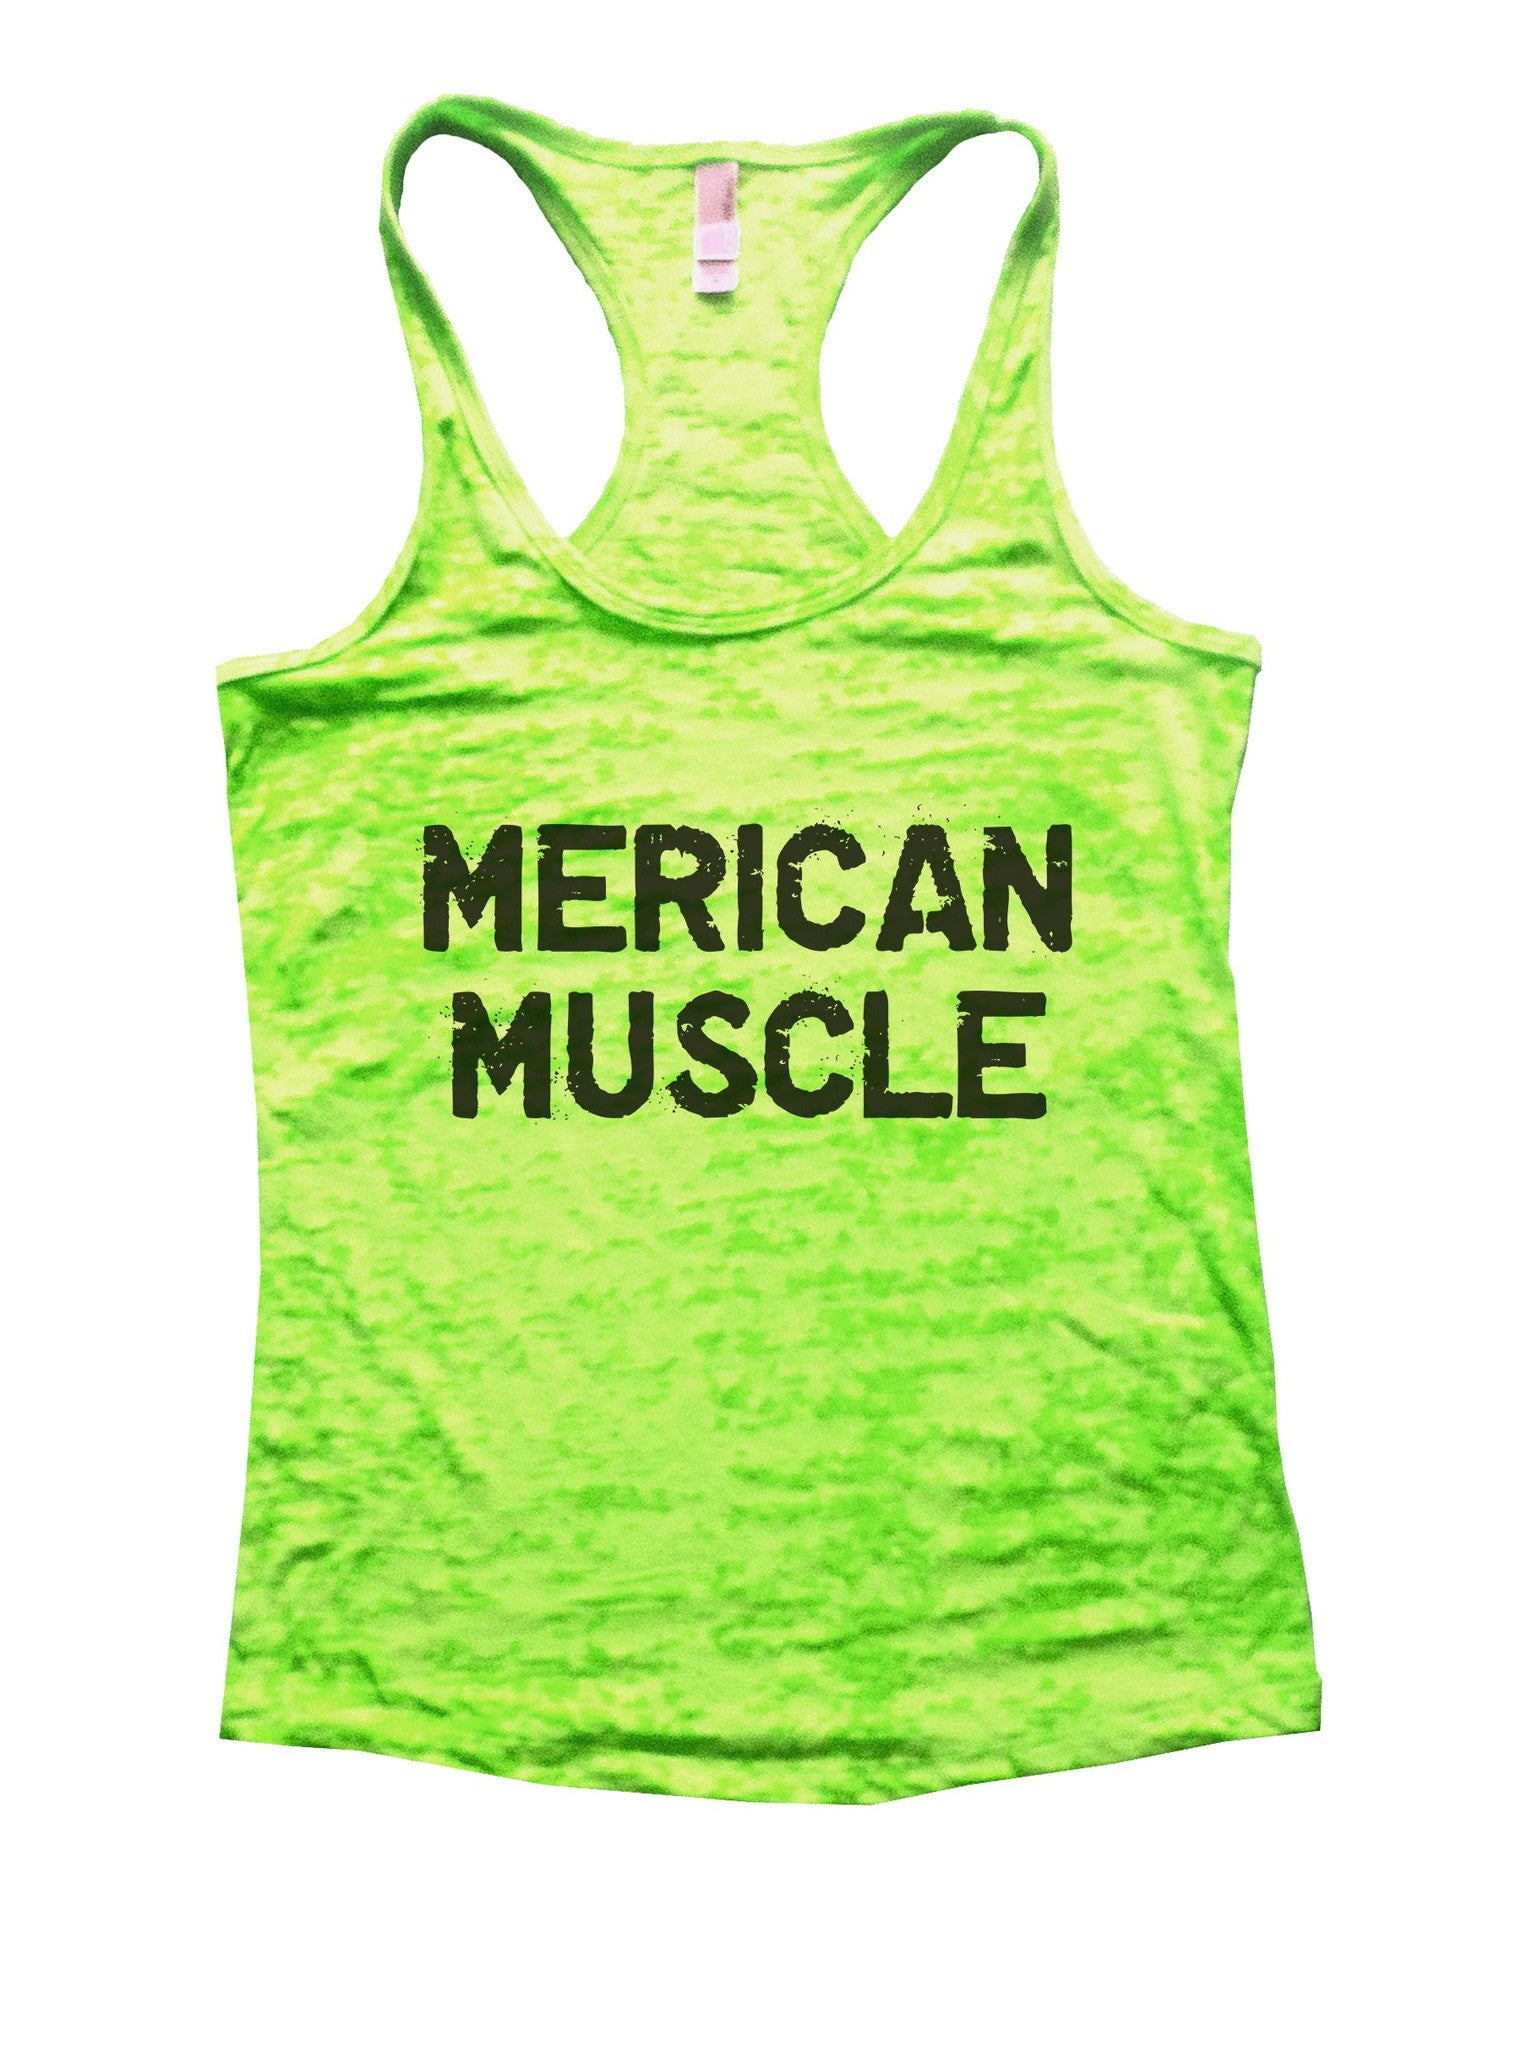 Merican Muscle Burnout Tank Top By BurnoutTankTops.com - 1022 - Funny Shirts Tank Tops Burnouts and Triblends  - 1